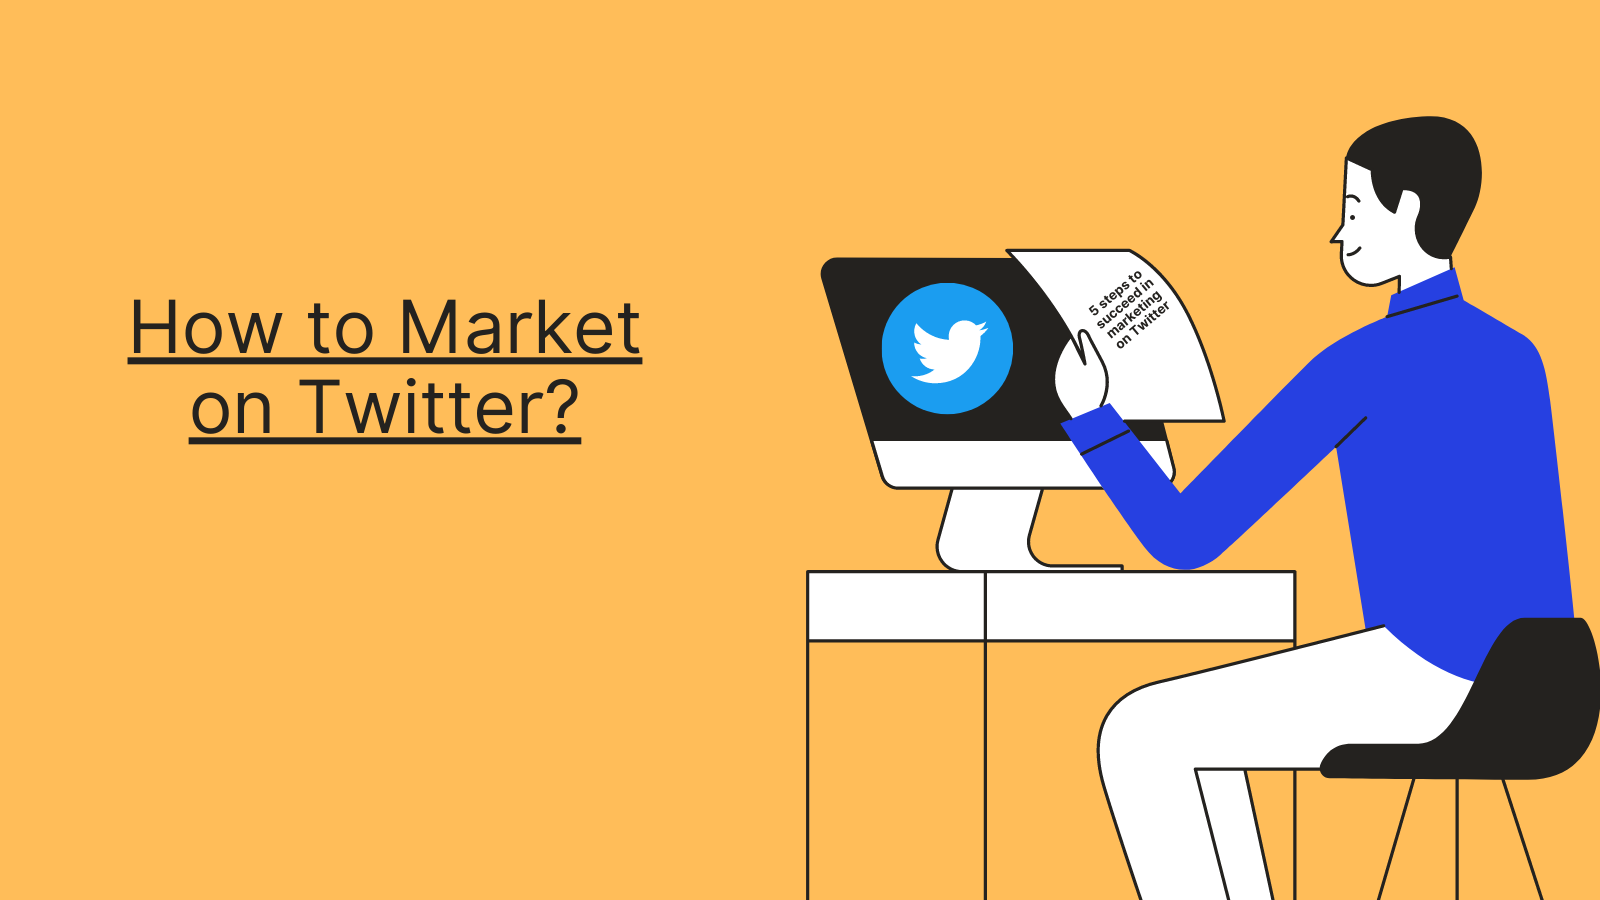 How to Market on Twitter